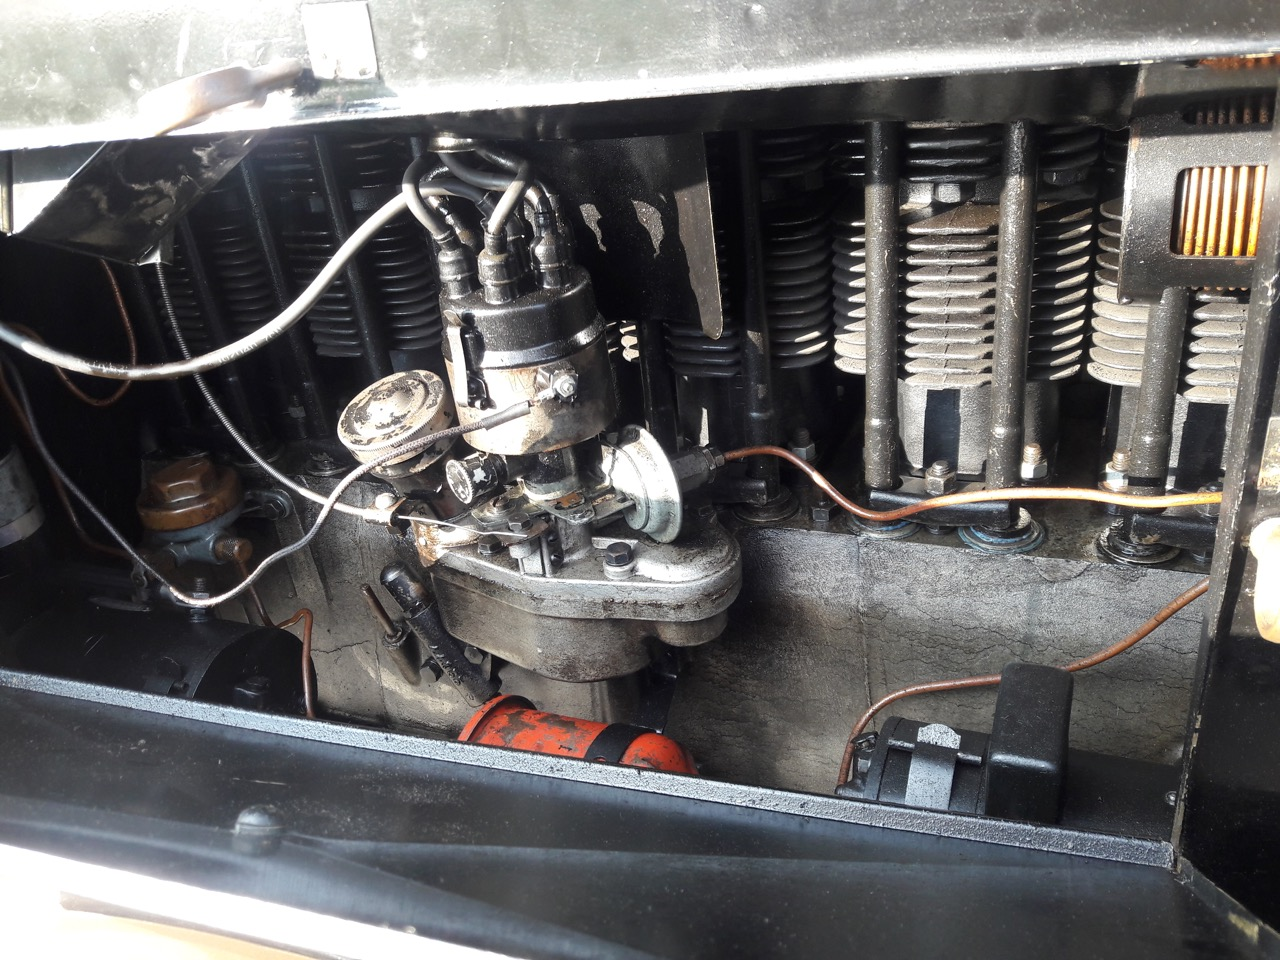 Engine is air-cooled